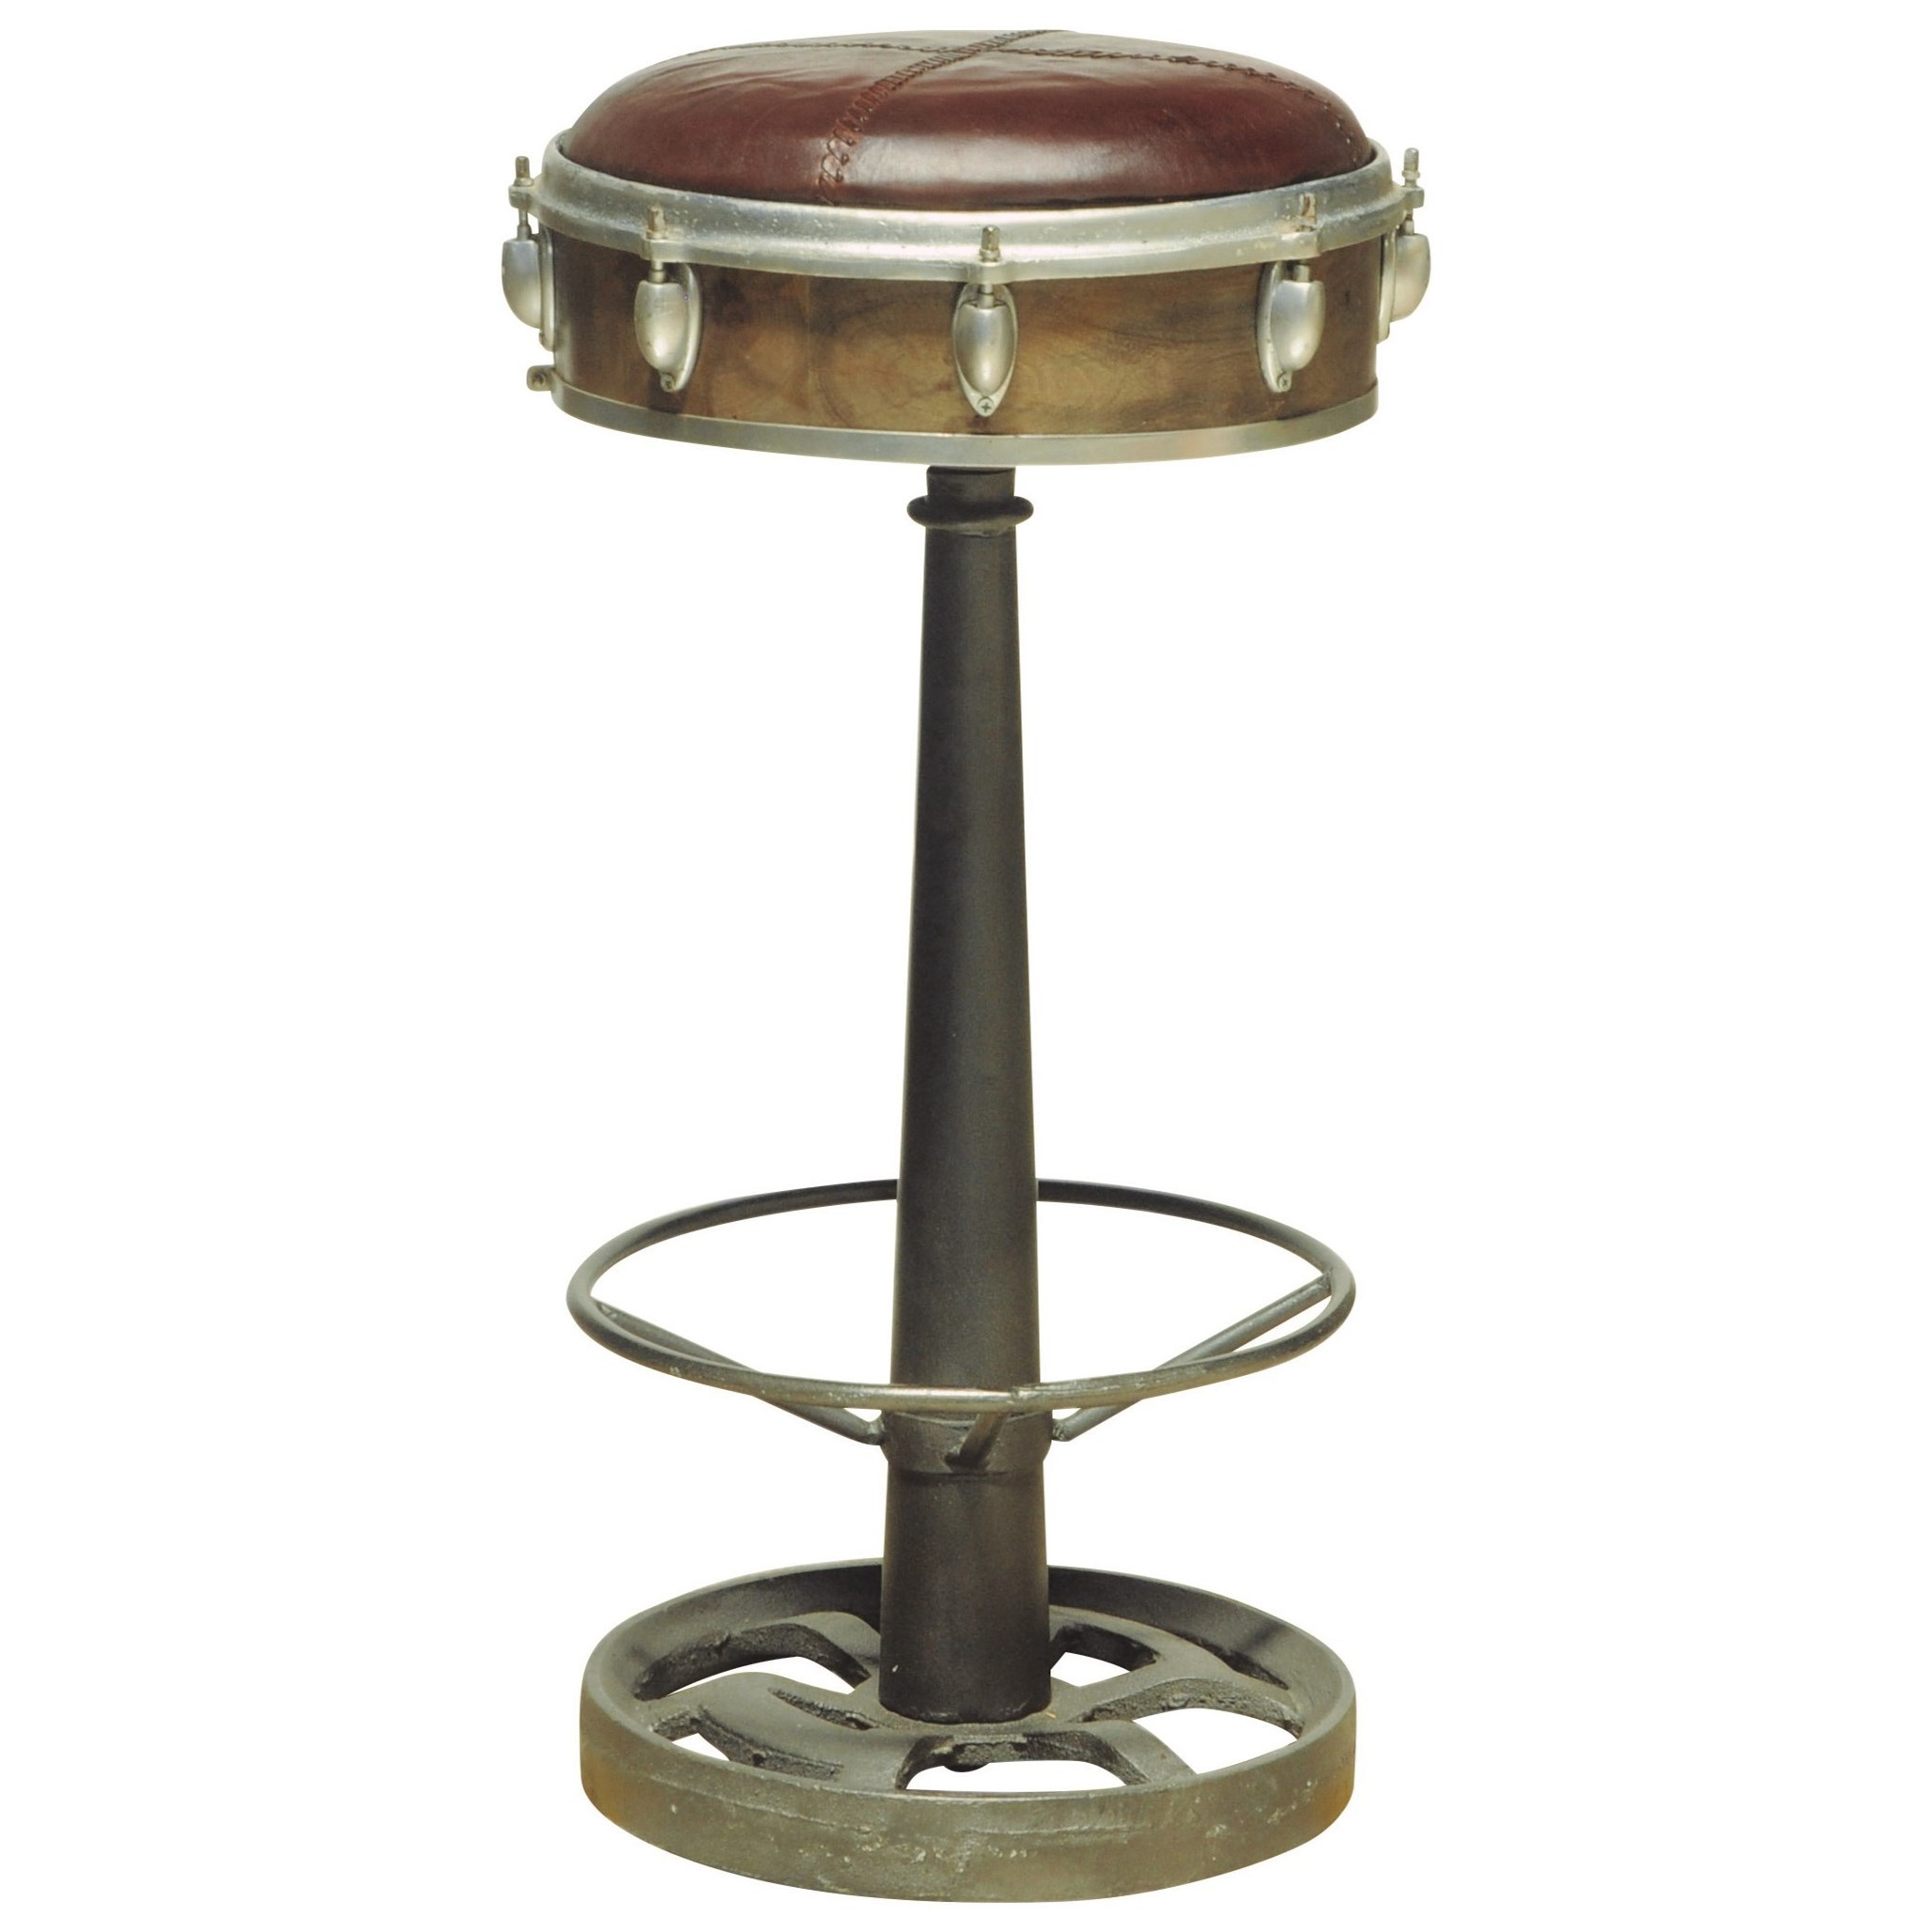 Pulaski Furniture Accents Wright Bar Stool With Drum